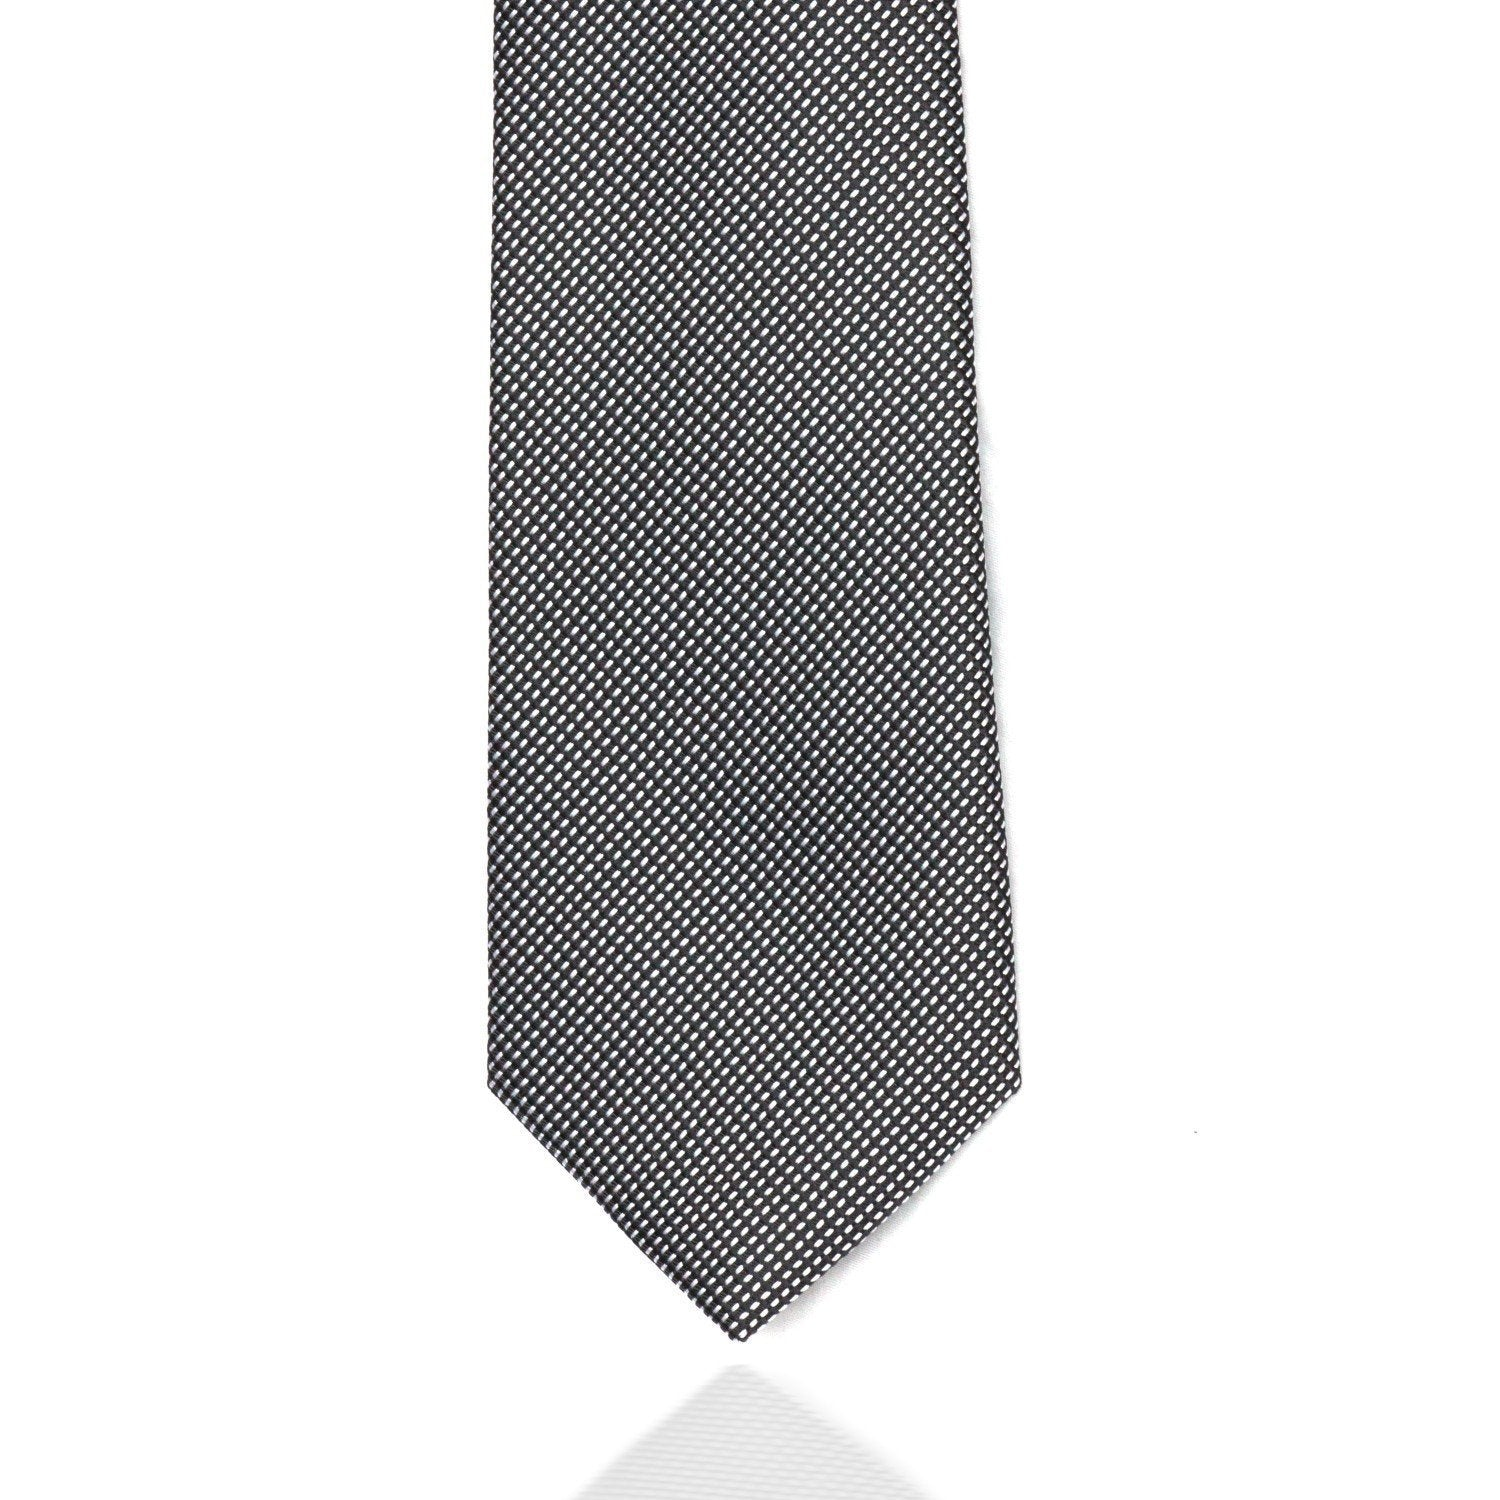 Silver and Black Weave MF Tie Ties Cuffed.com.au